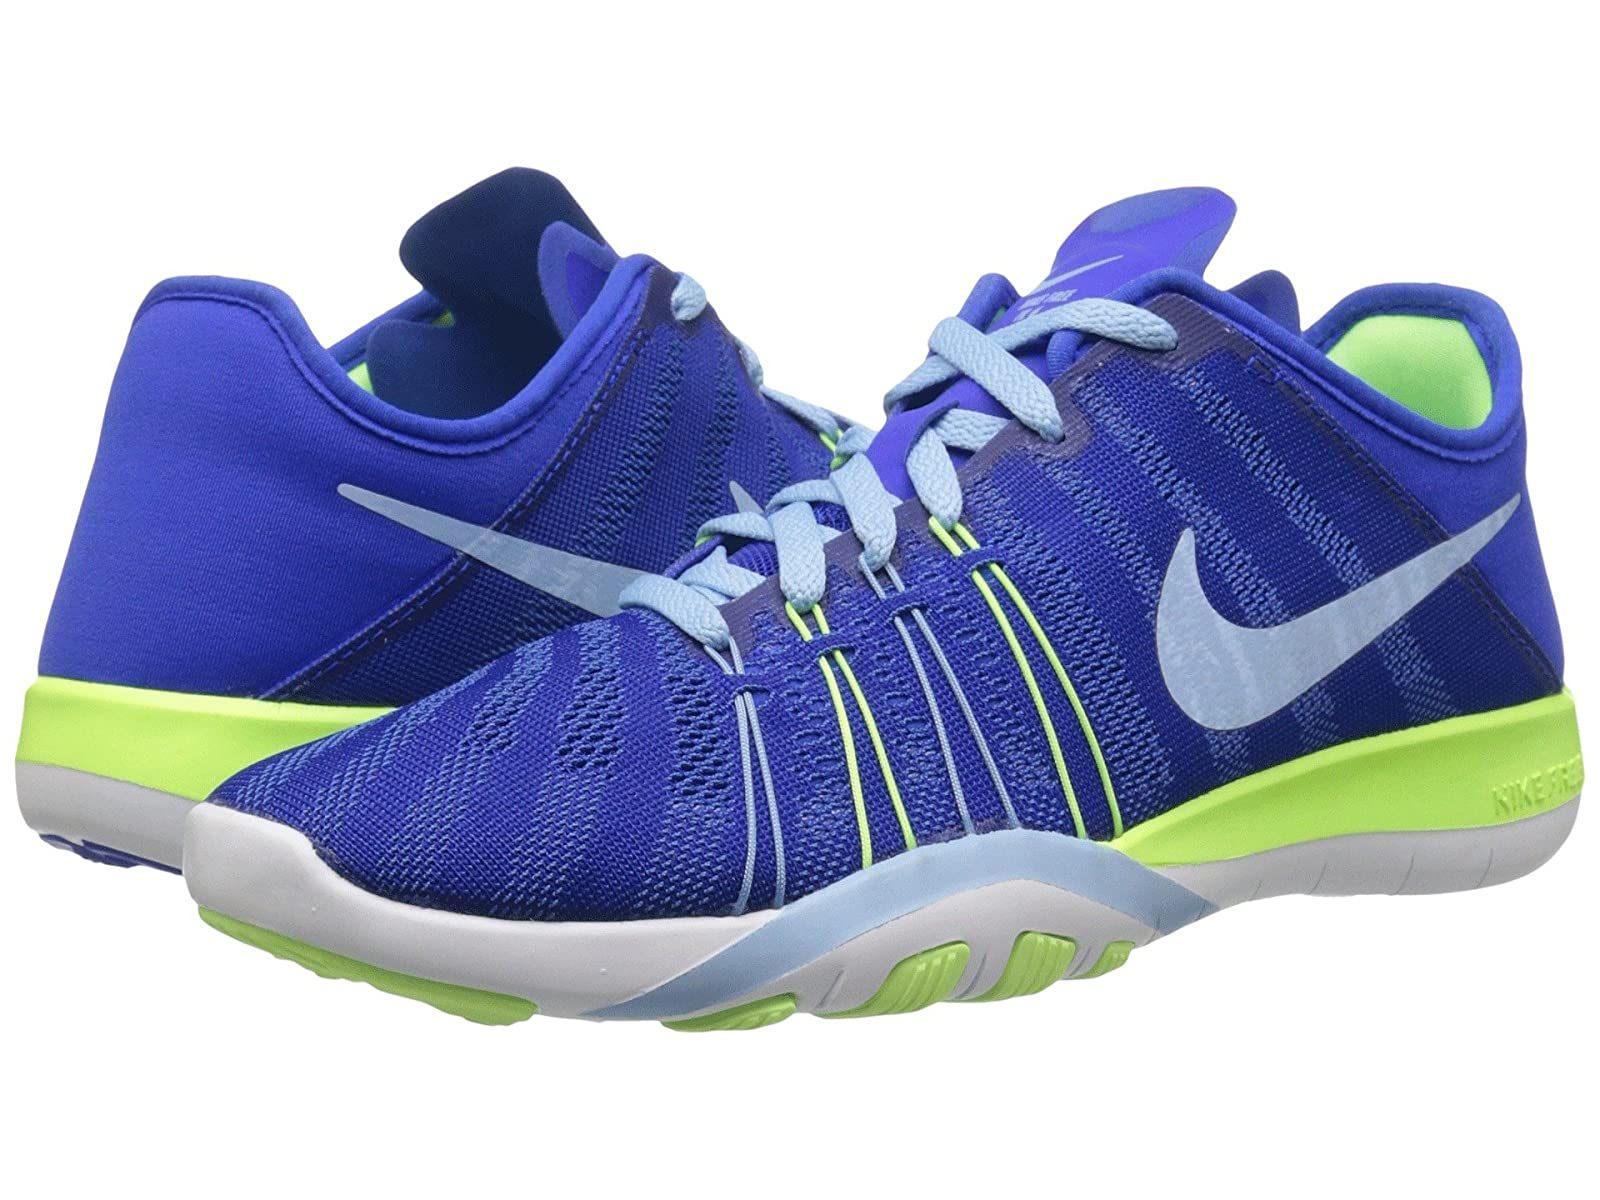 Nike Free TR 6Cheap and distinctive eye-catching shoes